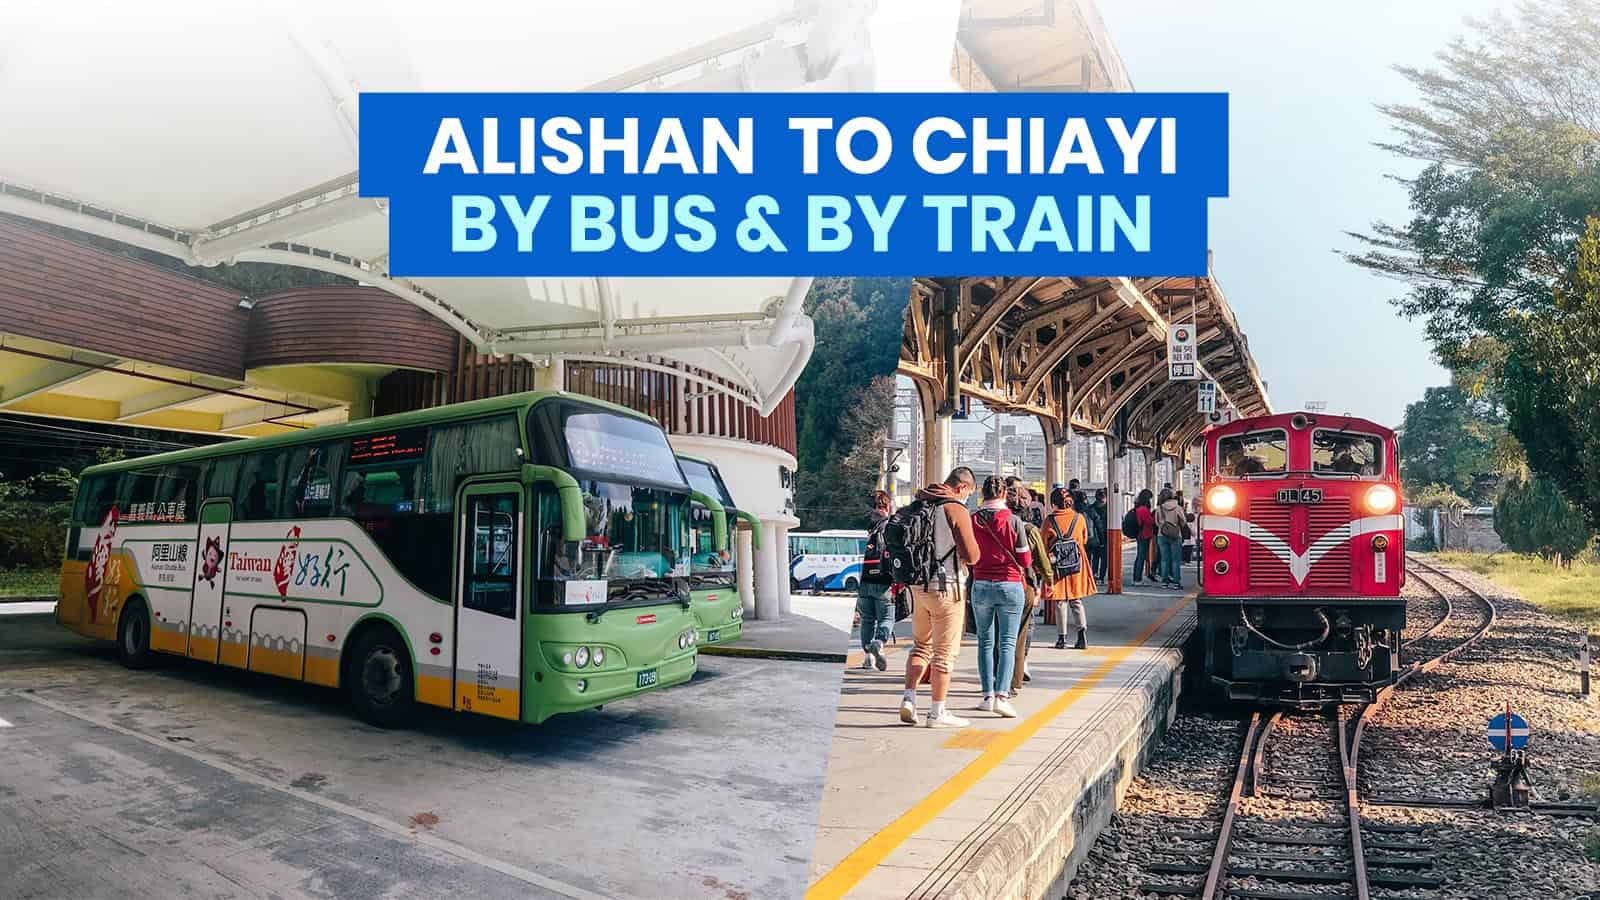 ALISHAN TO CHIAYI by DIRECT BUS & TRAIN: Schedule & Fares